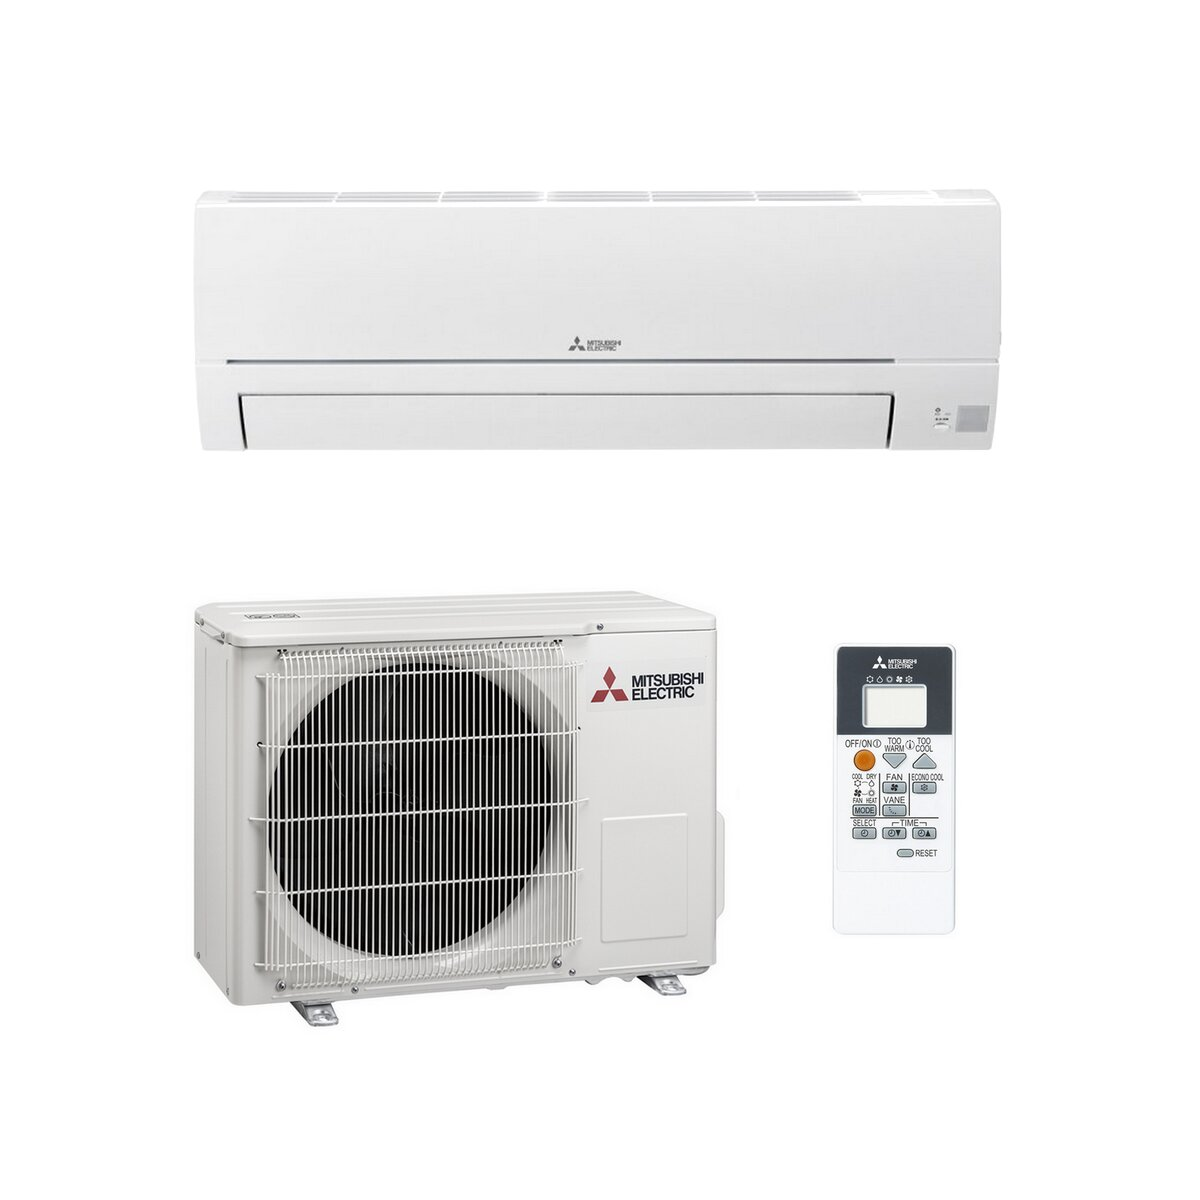 Mitsubishi Msz Dm25 Basic Edition Set 25 Kw